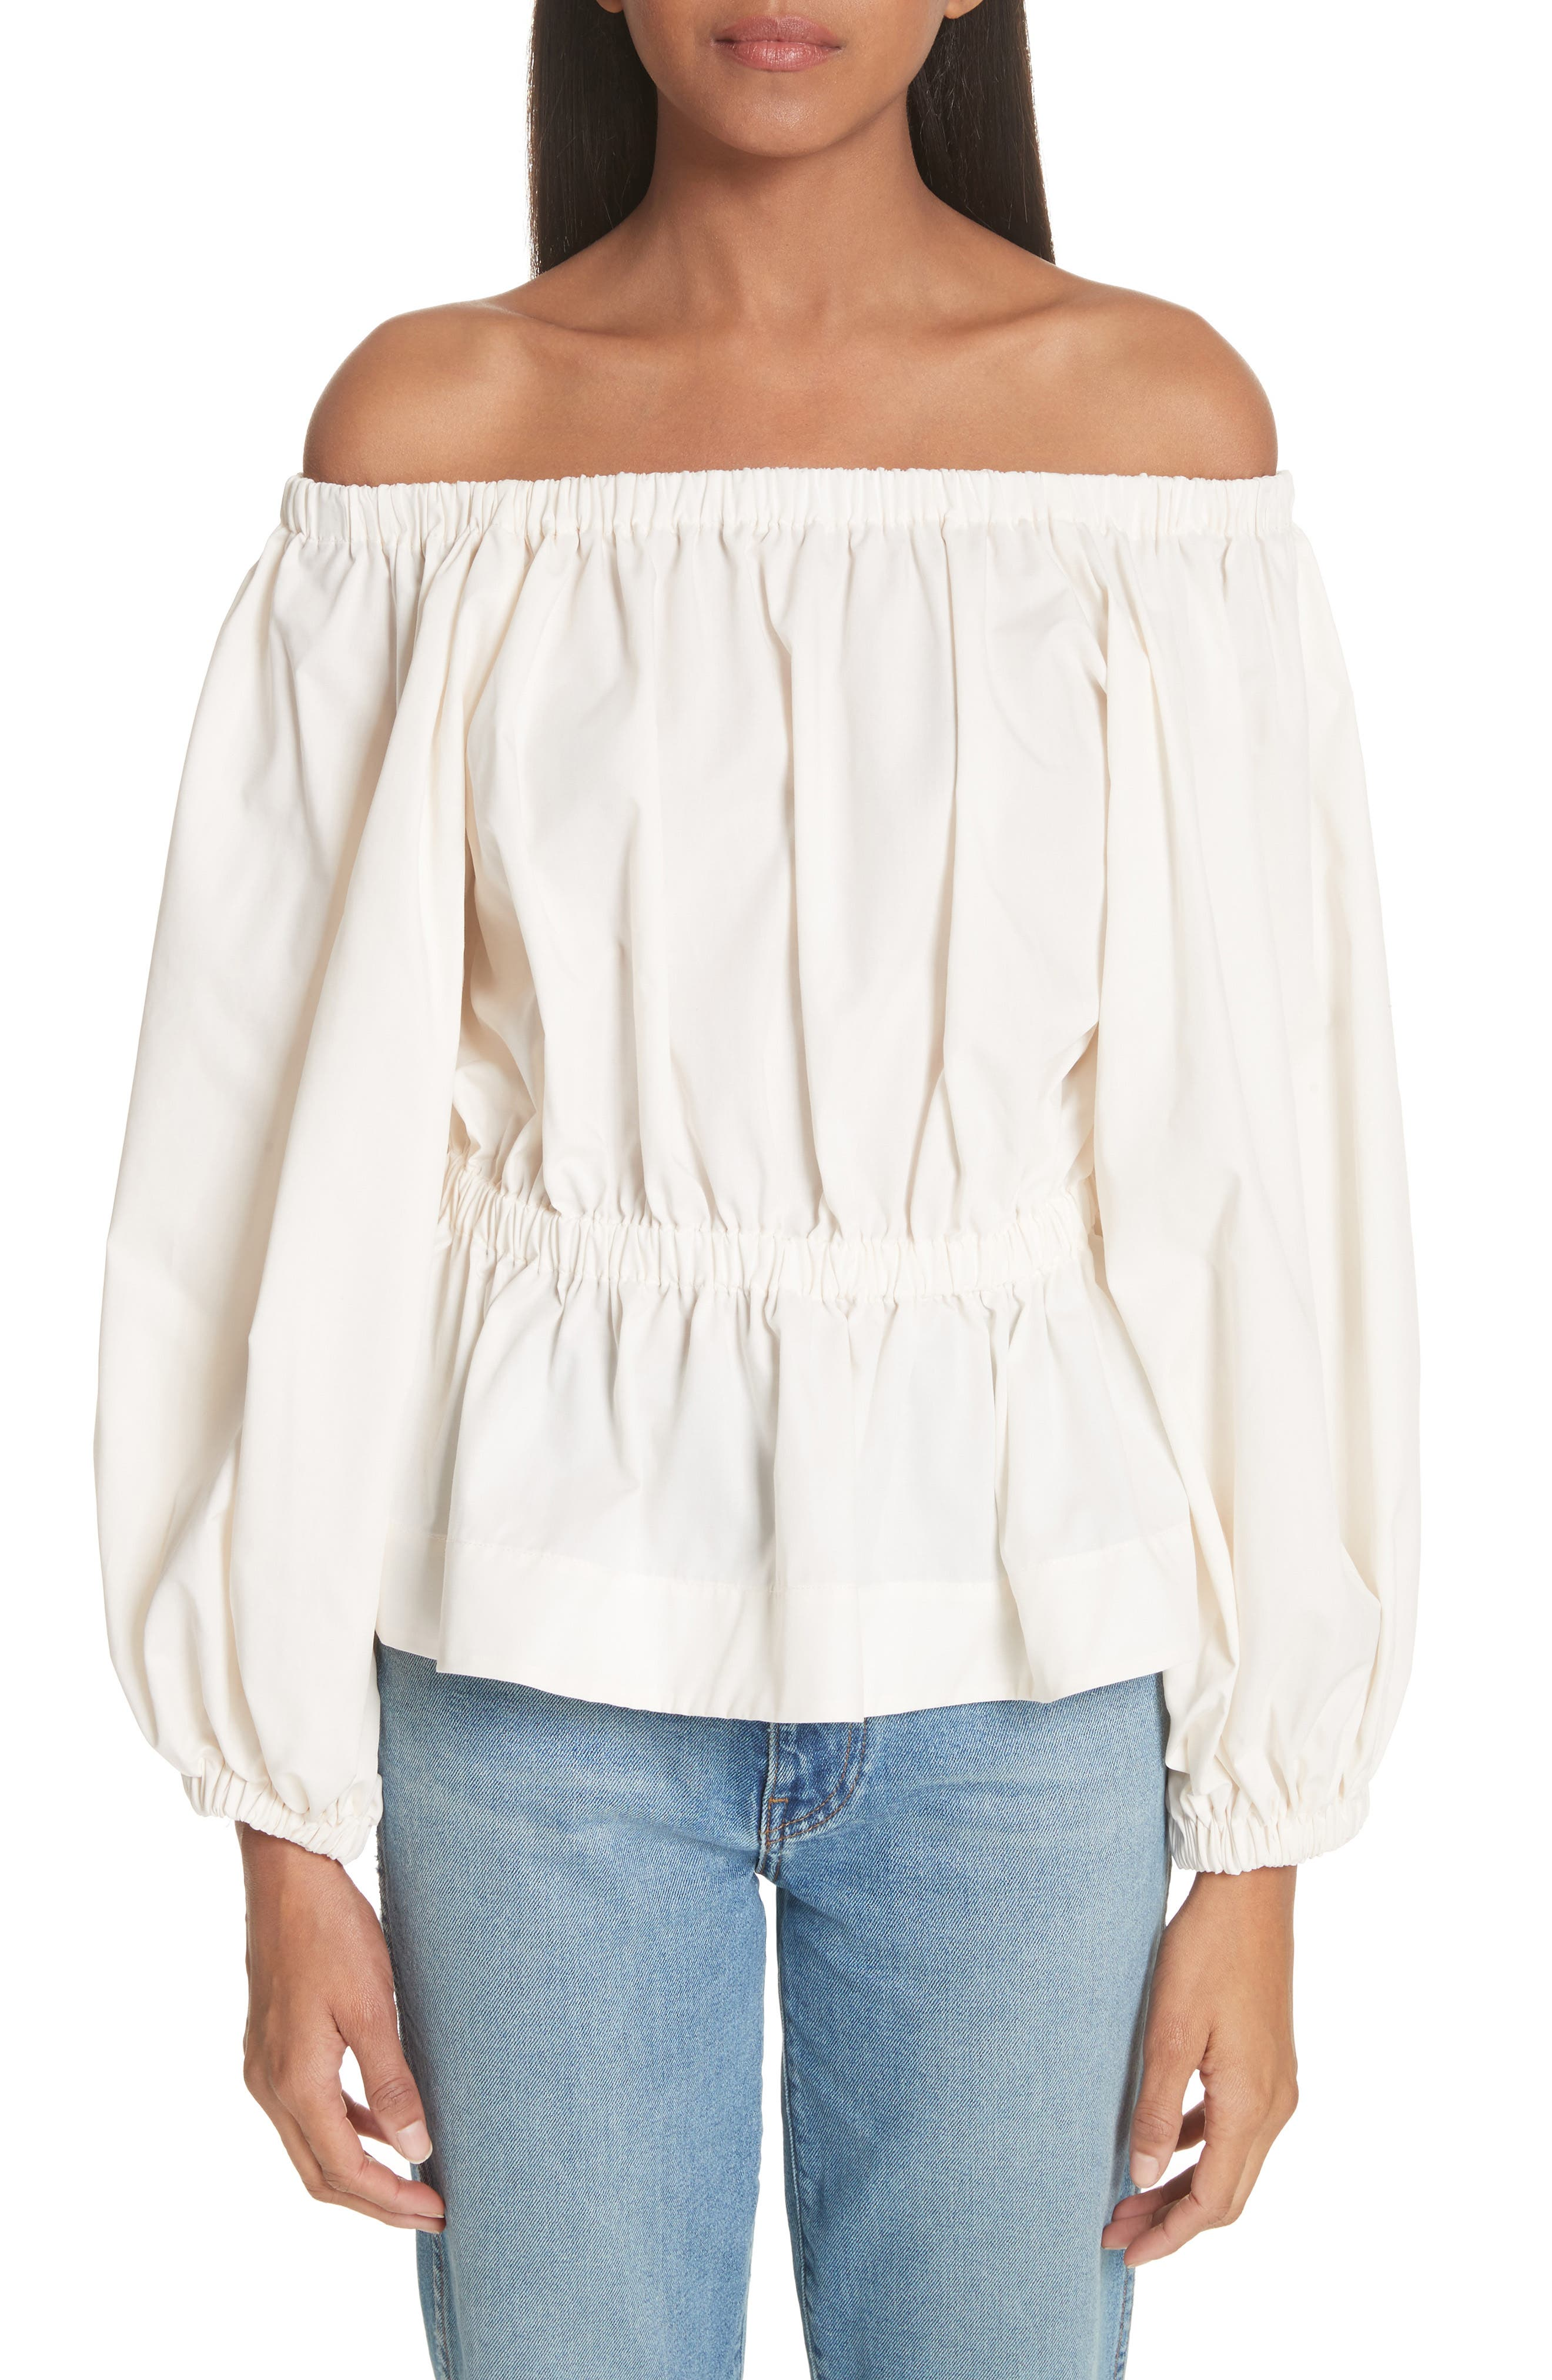 Molly Goddard Marion Ruched Off the Shoulder Top